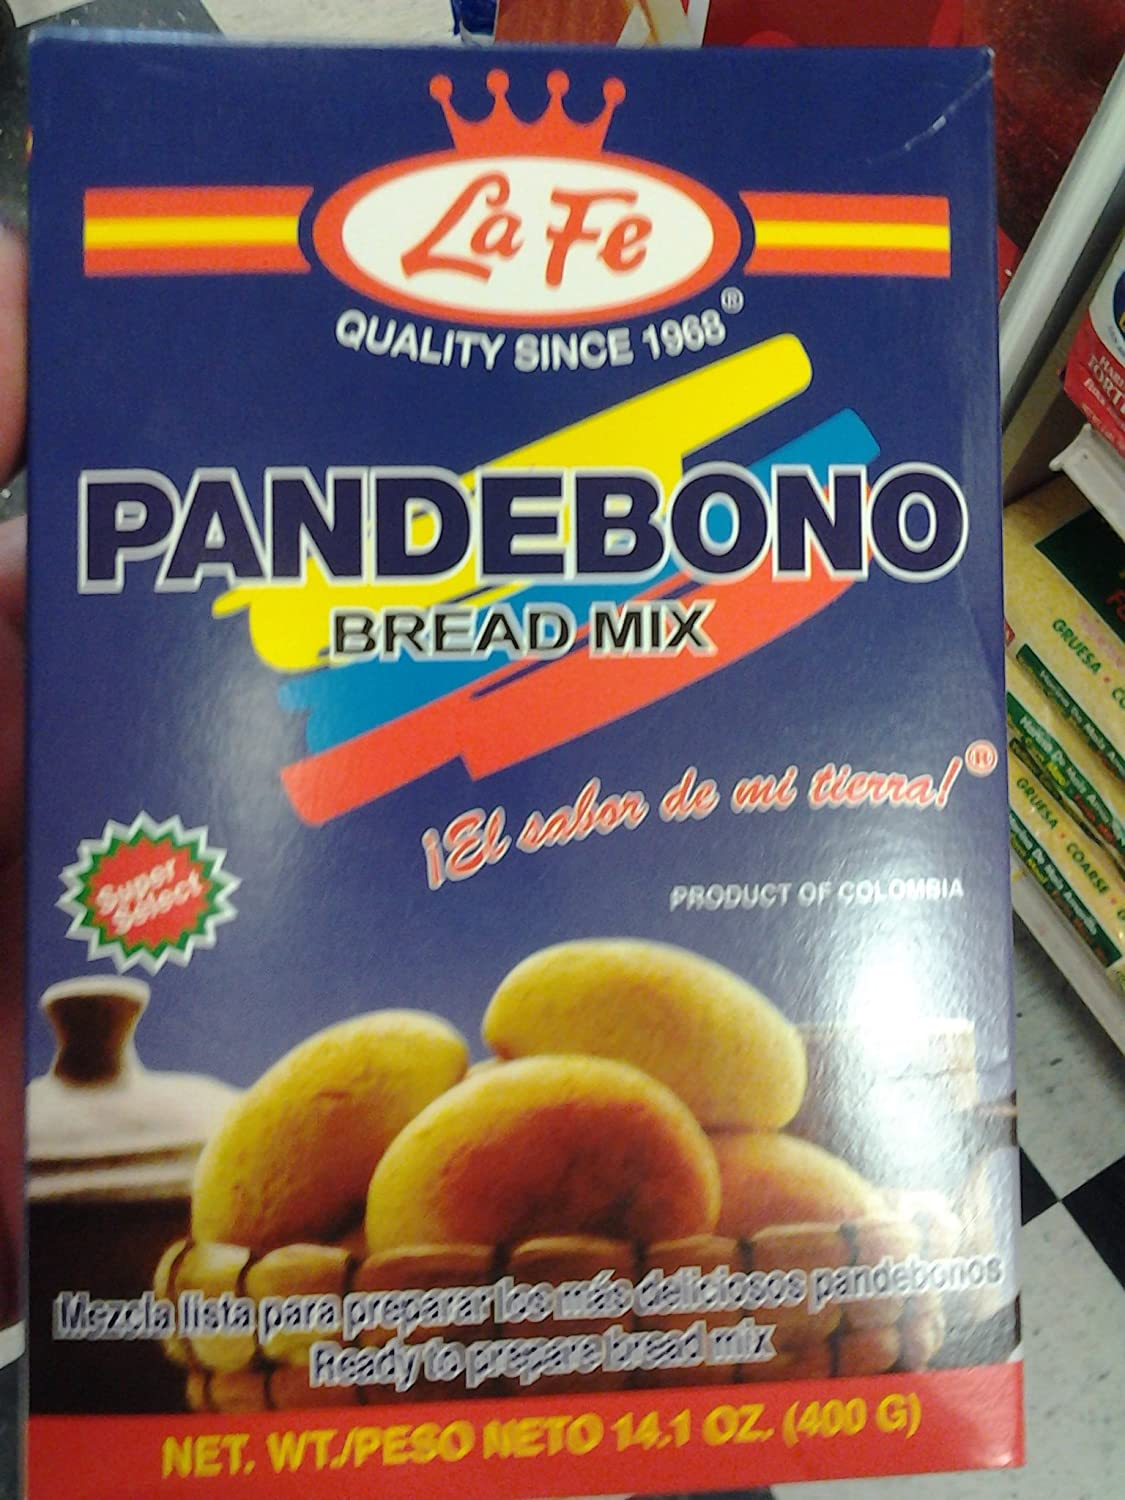 Amazon.com : Pan De Bono Colombiano (Typical Colombian Pandebono, 1 Pack) 14.01 Oz : Grocery & Gourmet Food